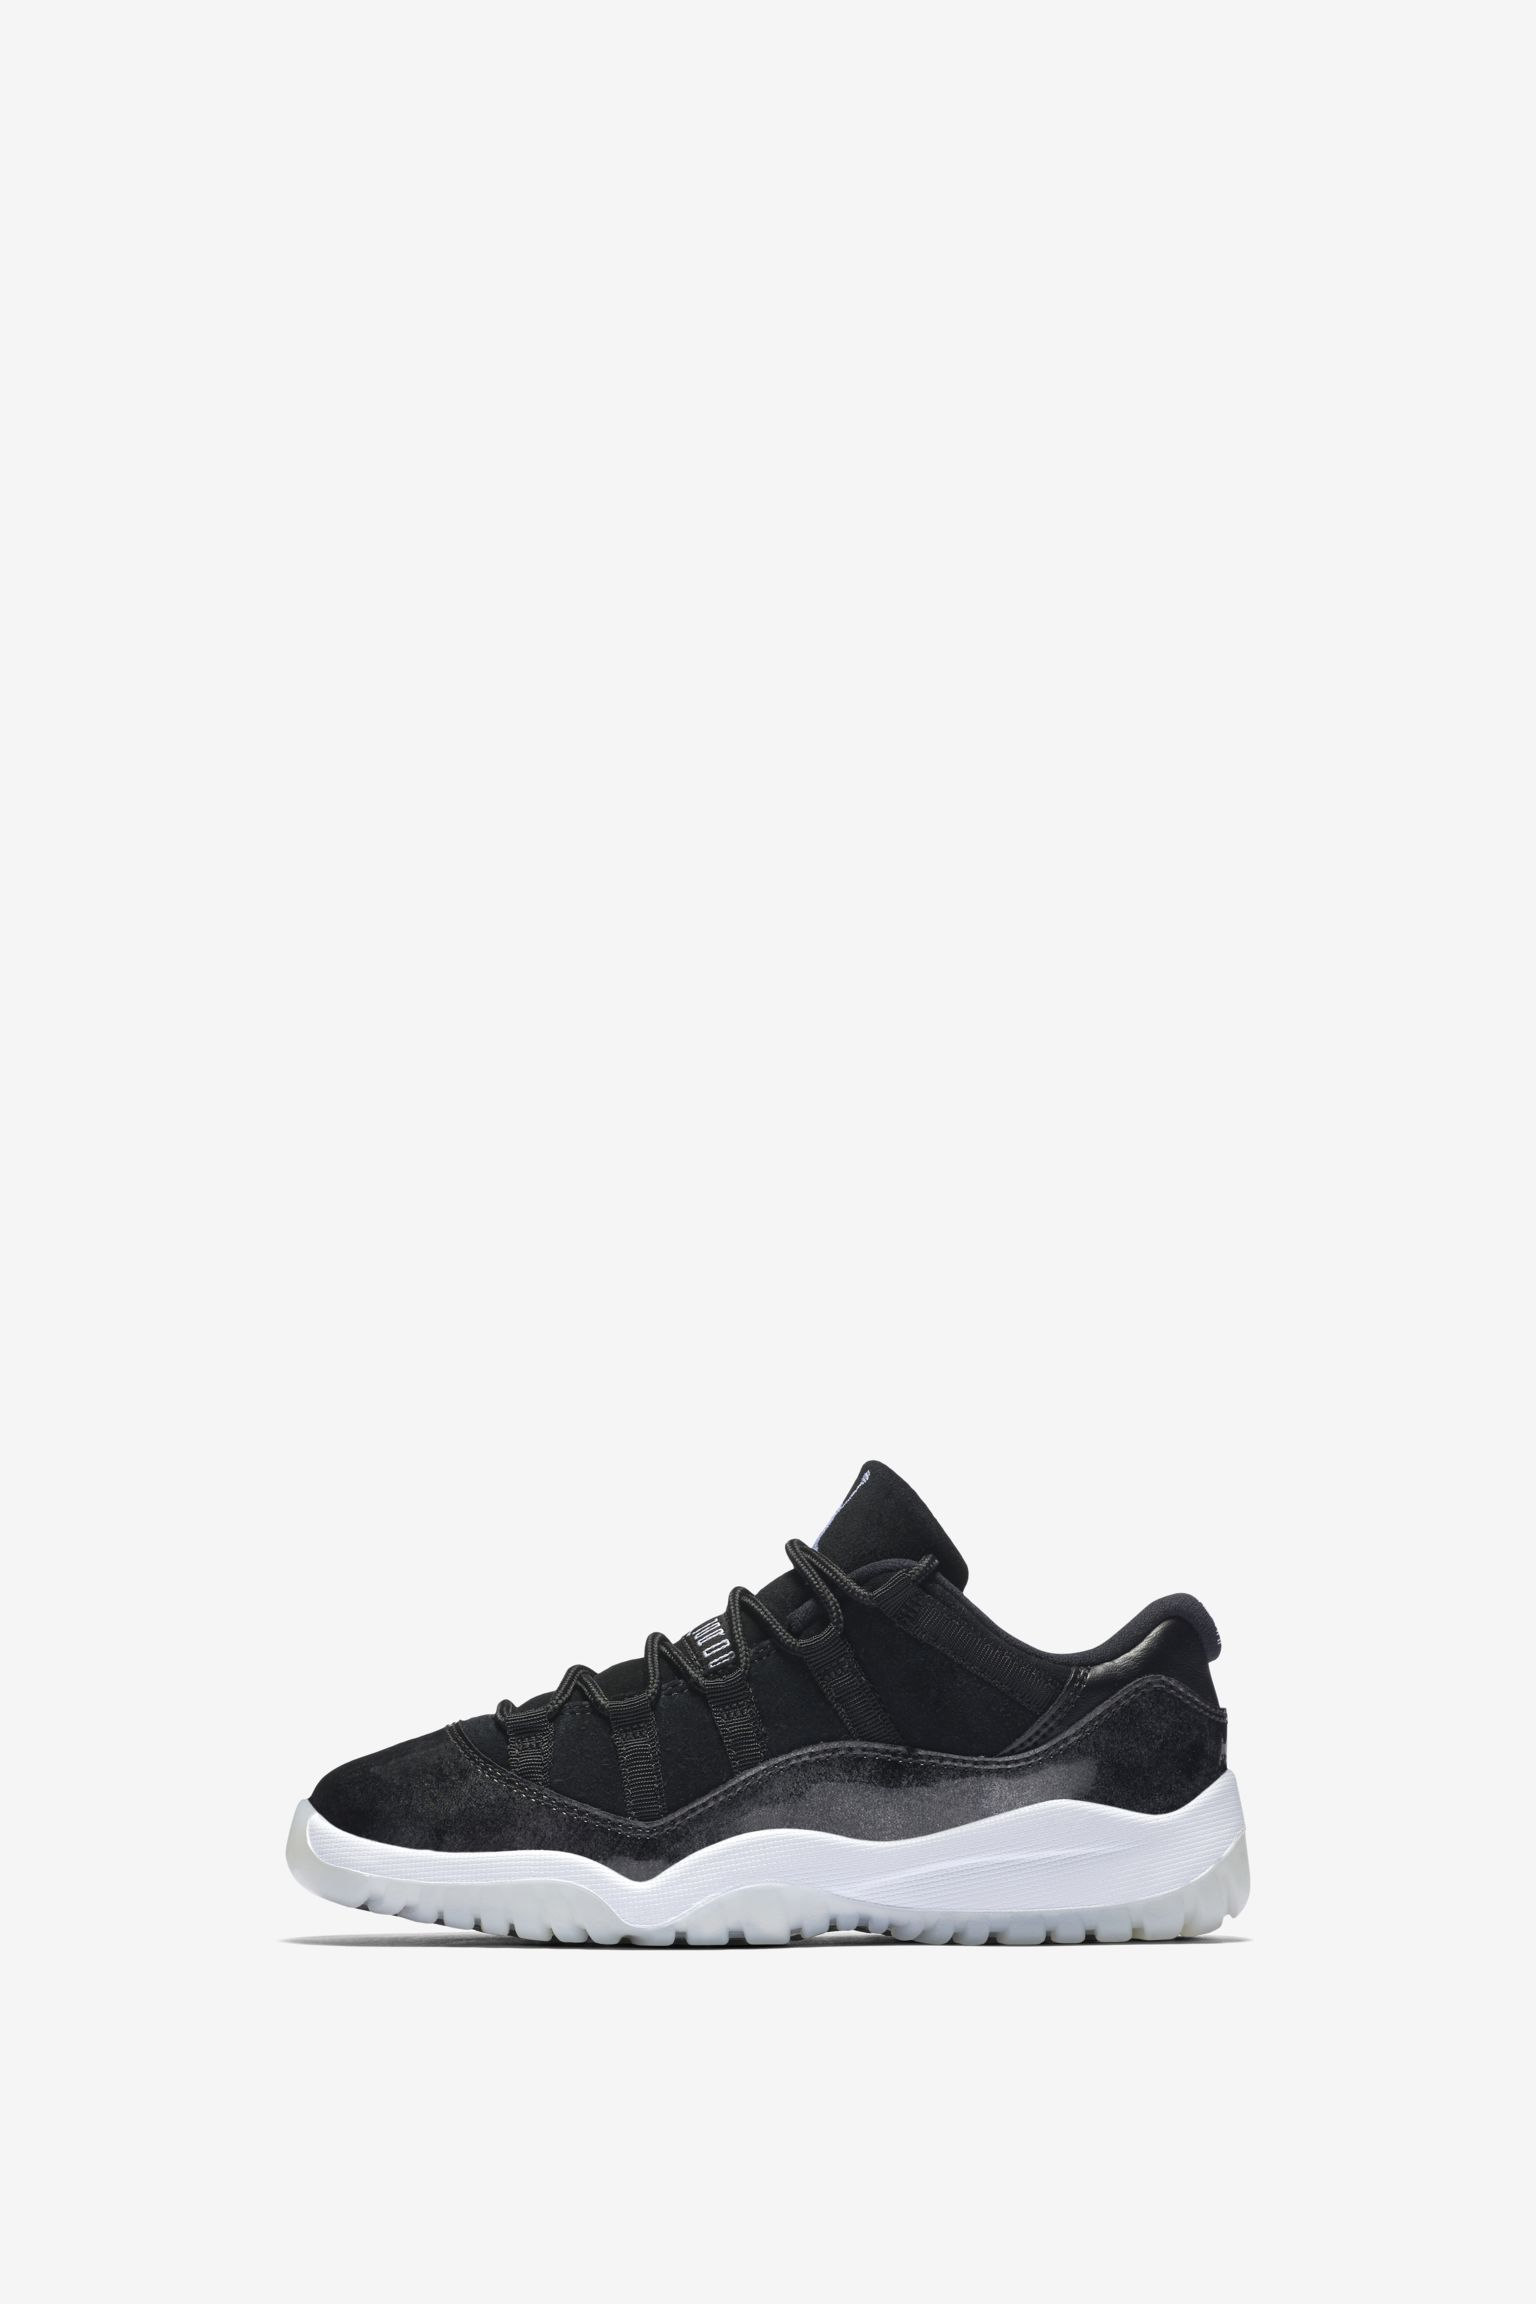 Air Jordan 11 Retro Low  Black   White  Release Date. Nike⁠+ SNKRS 09a2c3754